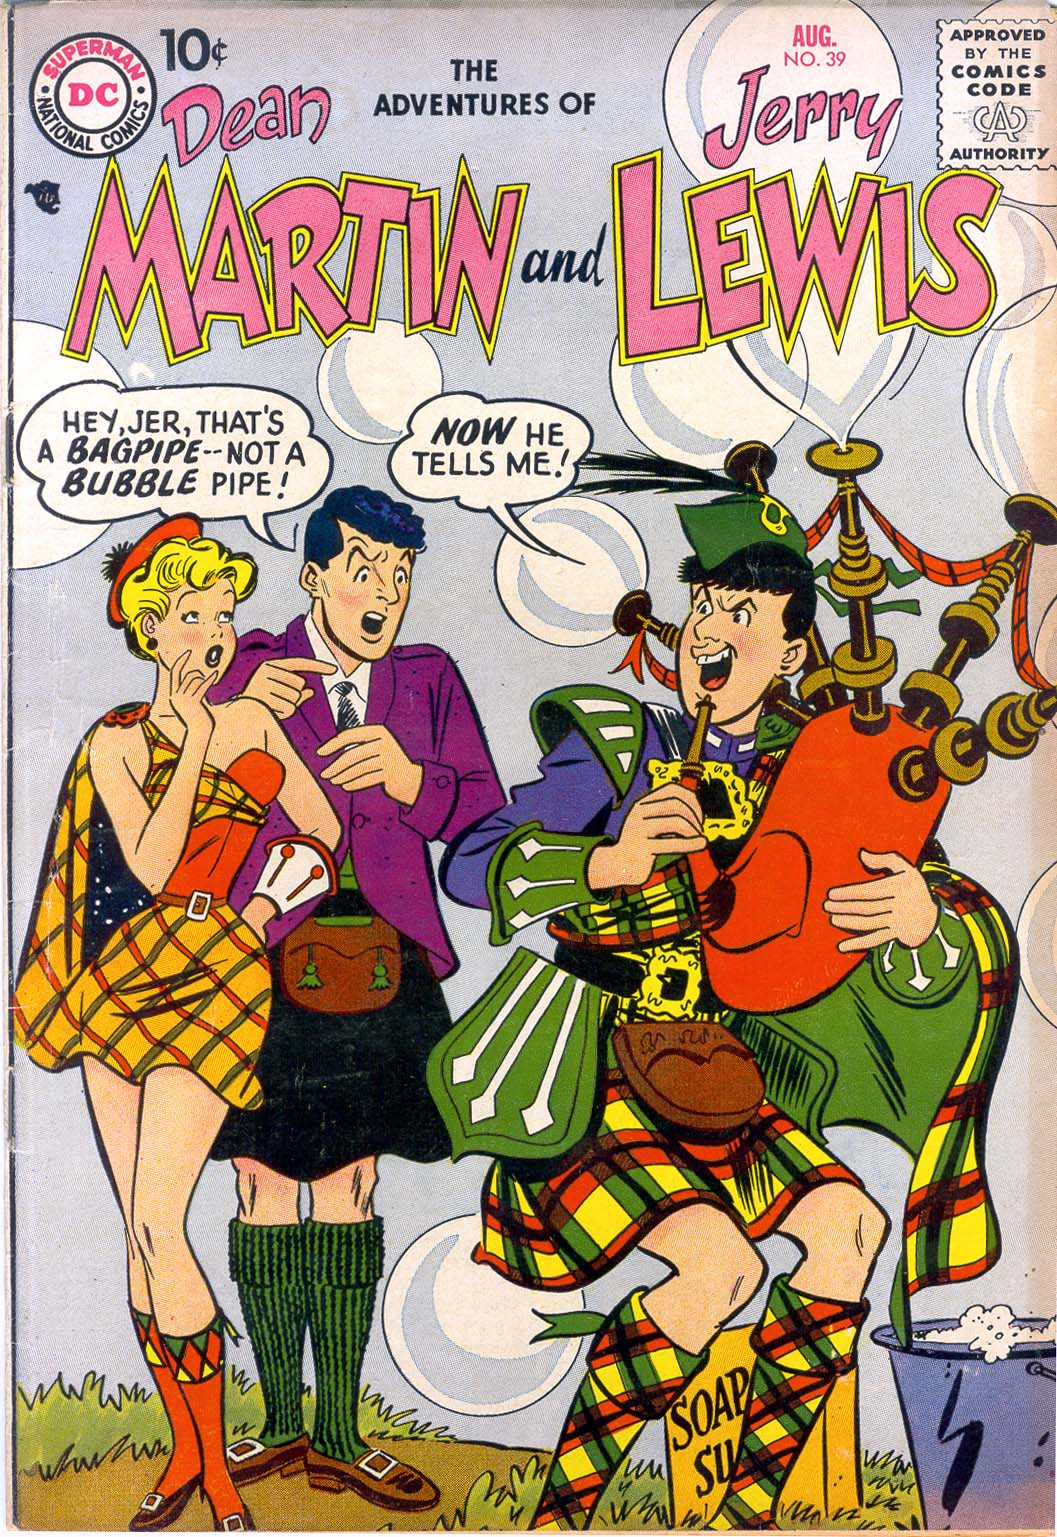 The Adventures of Dean Martin and Jerry Lewis 39 Page 1